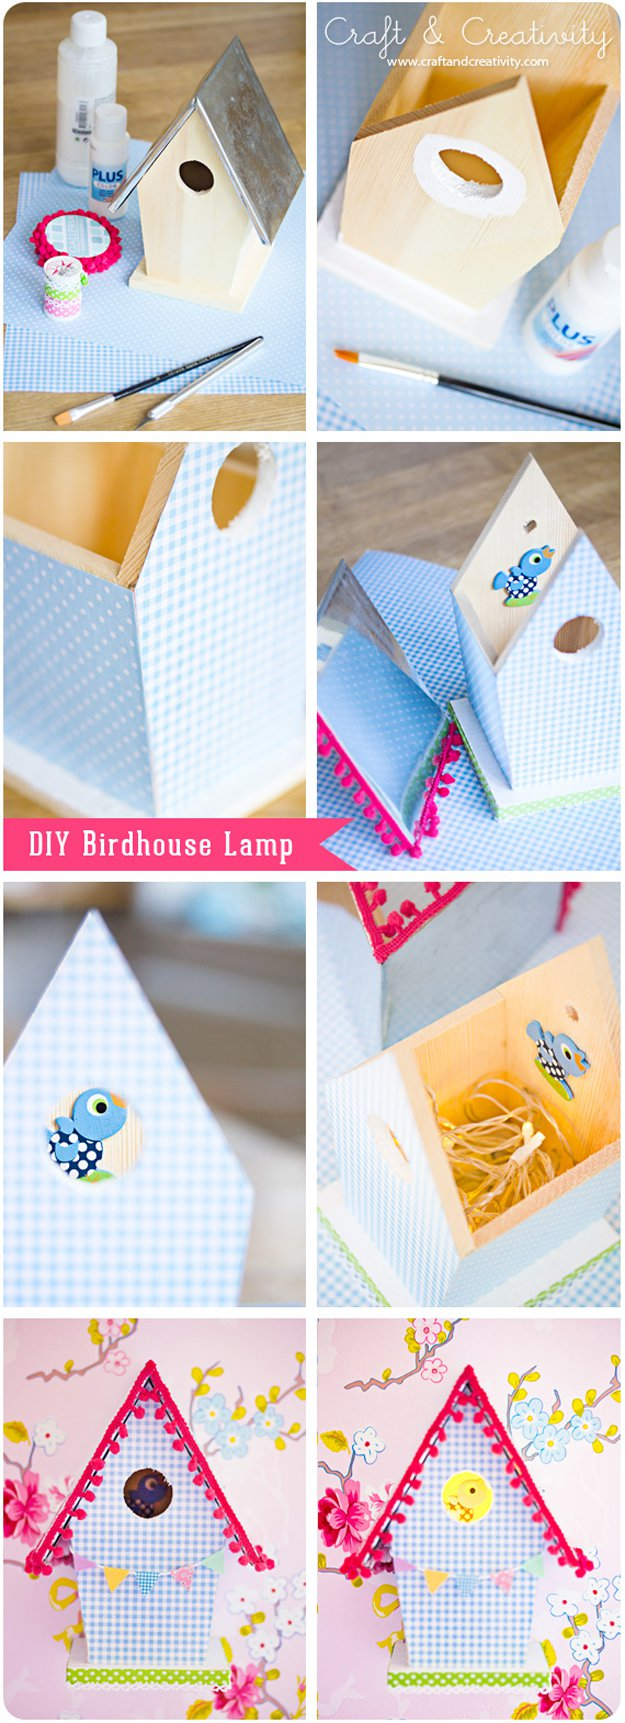 Washi Tape Crafts - DIY Birdhouse Lamp - Wall Art, Frames, Cards, Pencils, Room Decor and DIY Gifts, Back To School Supplies - Creative, Fun Craft Ideas for Teens, Tweens and Teenagers - Step by Step Tutorials and Instructions http://diyprojectsforteens.com/washi-tape-crafts